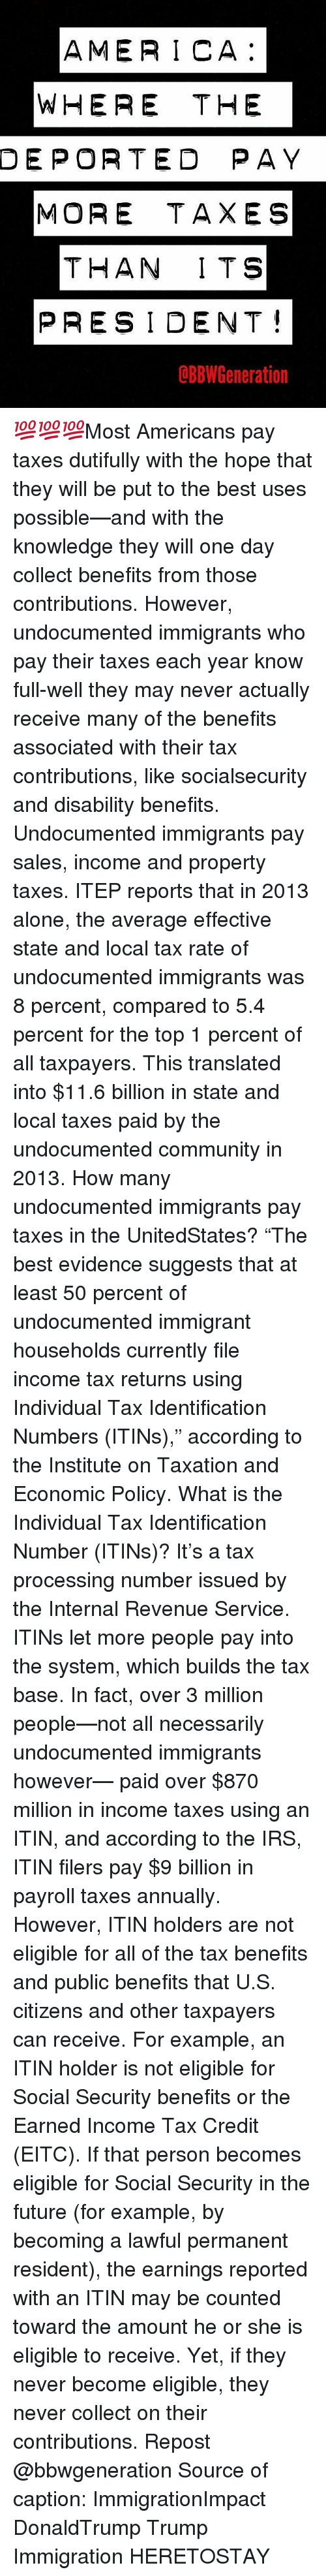 """Averagers: AMERICA  WHERE THE  DEPORTED PAY  MORE TAXES  THAN ITS  PRESIDENT  dBBW Generation 💯💯💯Most Americans pay taxes dutifully with the hope that they will be put to the best uses possible—and with the knowledge they will one day collect benefits from those contributions. However, undocumented immigrants who pay their taxes each year know full-well they may never actually receive many of the benefits associated with their tax contributions, like socialsecurity and disability benefits. Undocumented immigrants pay sales, income and property taxes. ITEP reports that in 2013 alone, the average effective state and local tax rate of undocumented immigrants was 8 percent, compared to 5.4 percent for the top 1 percent of all taxpayers. This translated into $11.6 billion in state and local taxes paid by the undocumented community in 2013. How many undocumented immigrants pay taxes in the UnitedStates? """"The best evidence suggests that at least 50 percent of undocumented immigrant households currently file income tax returns using Individual Tax Identification Numbers (ITINs),"""" according to the Institute on Taxation and Economic Policy. What is the Individual Tax Identification Number (ITINs)? It's a tax processing number issued by the Internal Revenue Service. ITINs let more people pay into the system, which builds the tax base. In fact, over 3 million people—not all necessarily undocumented immigrants however— paid over $870 million in income taxes using an ITIN, and according to the IRS, ITIN filers pay $9 billion in payroll taxes annually. However, ITIN holders are not eligible for all of the tax benefits and public benefits that U.S. citizens and other taxpayers can receive. For example, an ITIN holder is not eligible for Social Security benefits or the Earned Income Tax Credit (EITC). If that person becomes eligible for Social Security in the future (for example, by becoming a lawful permanent resident), the earnings reported with an ITIN may be counted toward the a"""